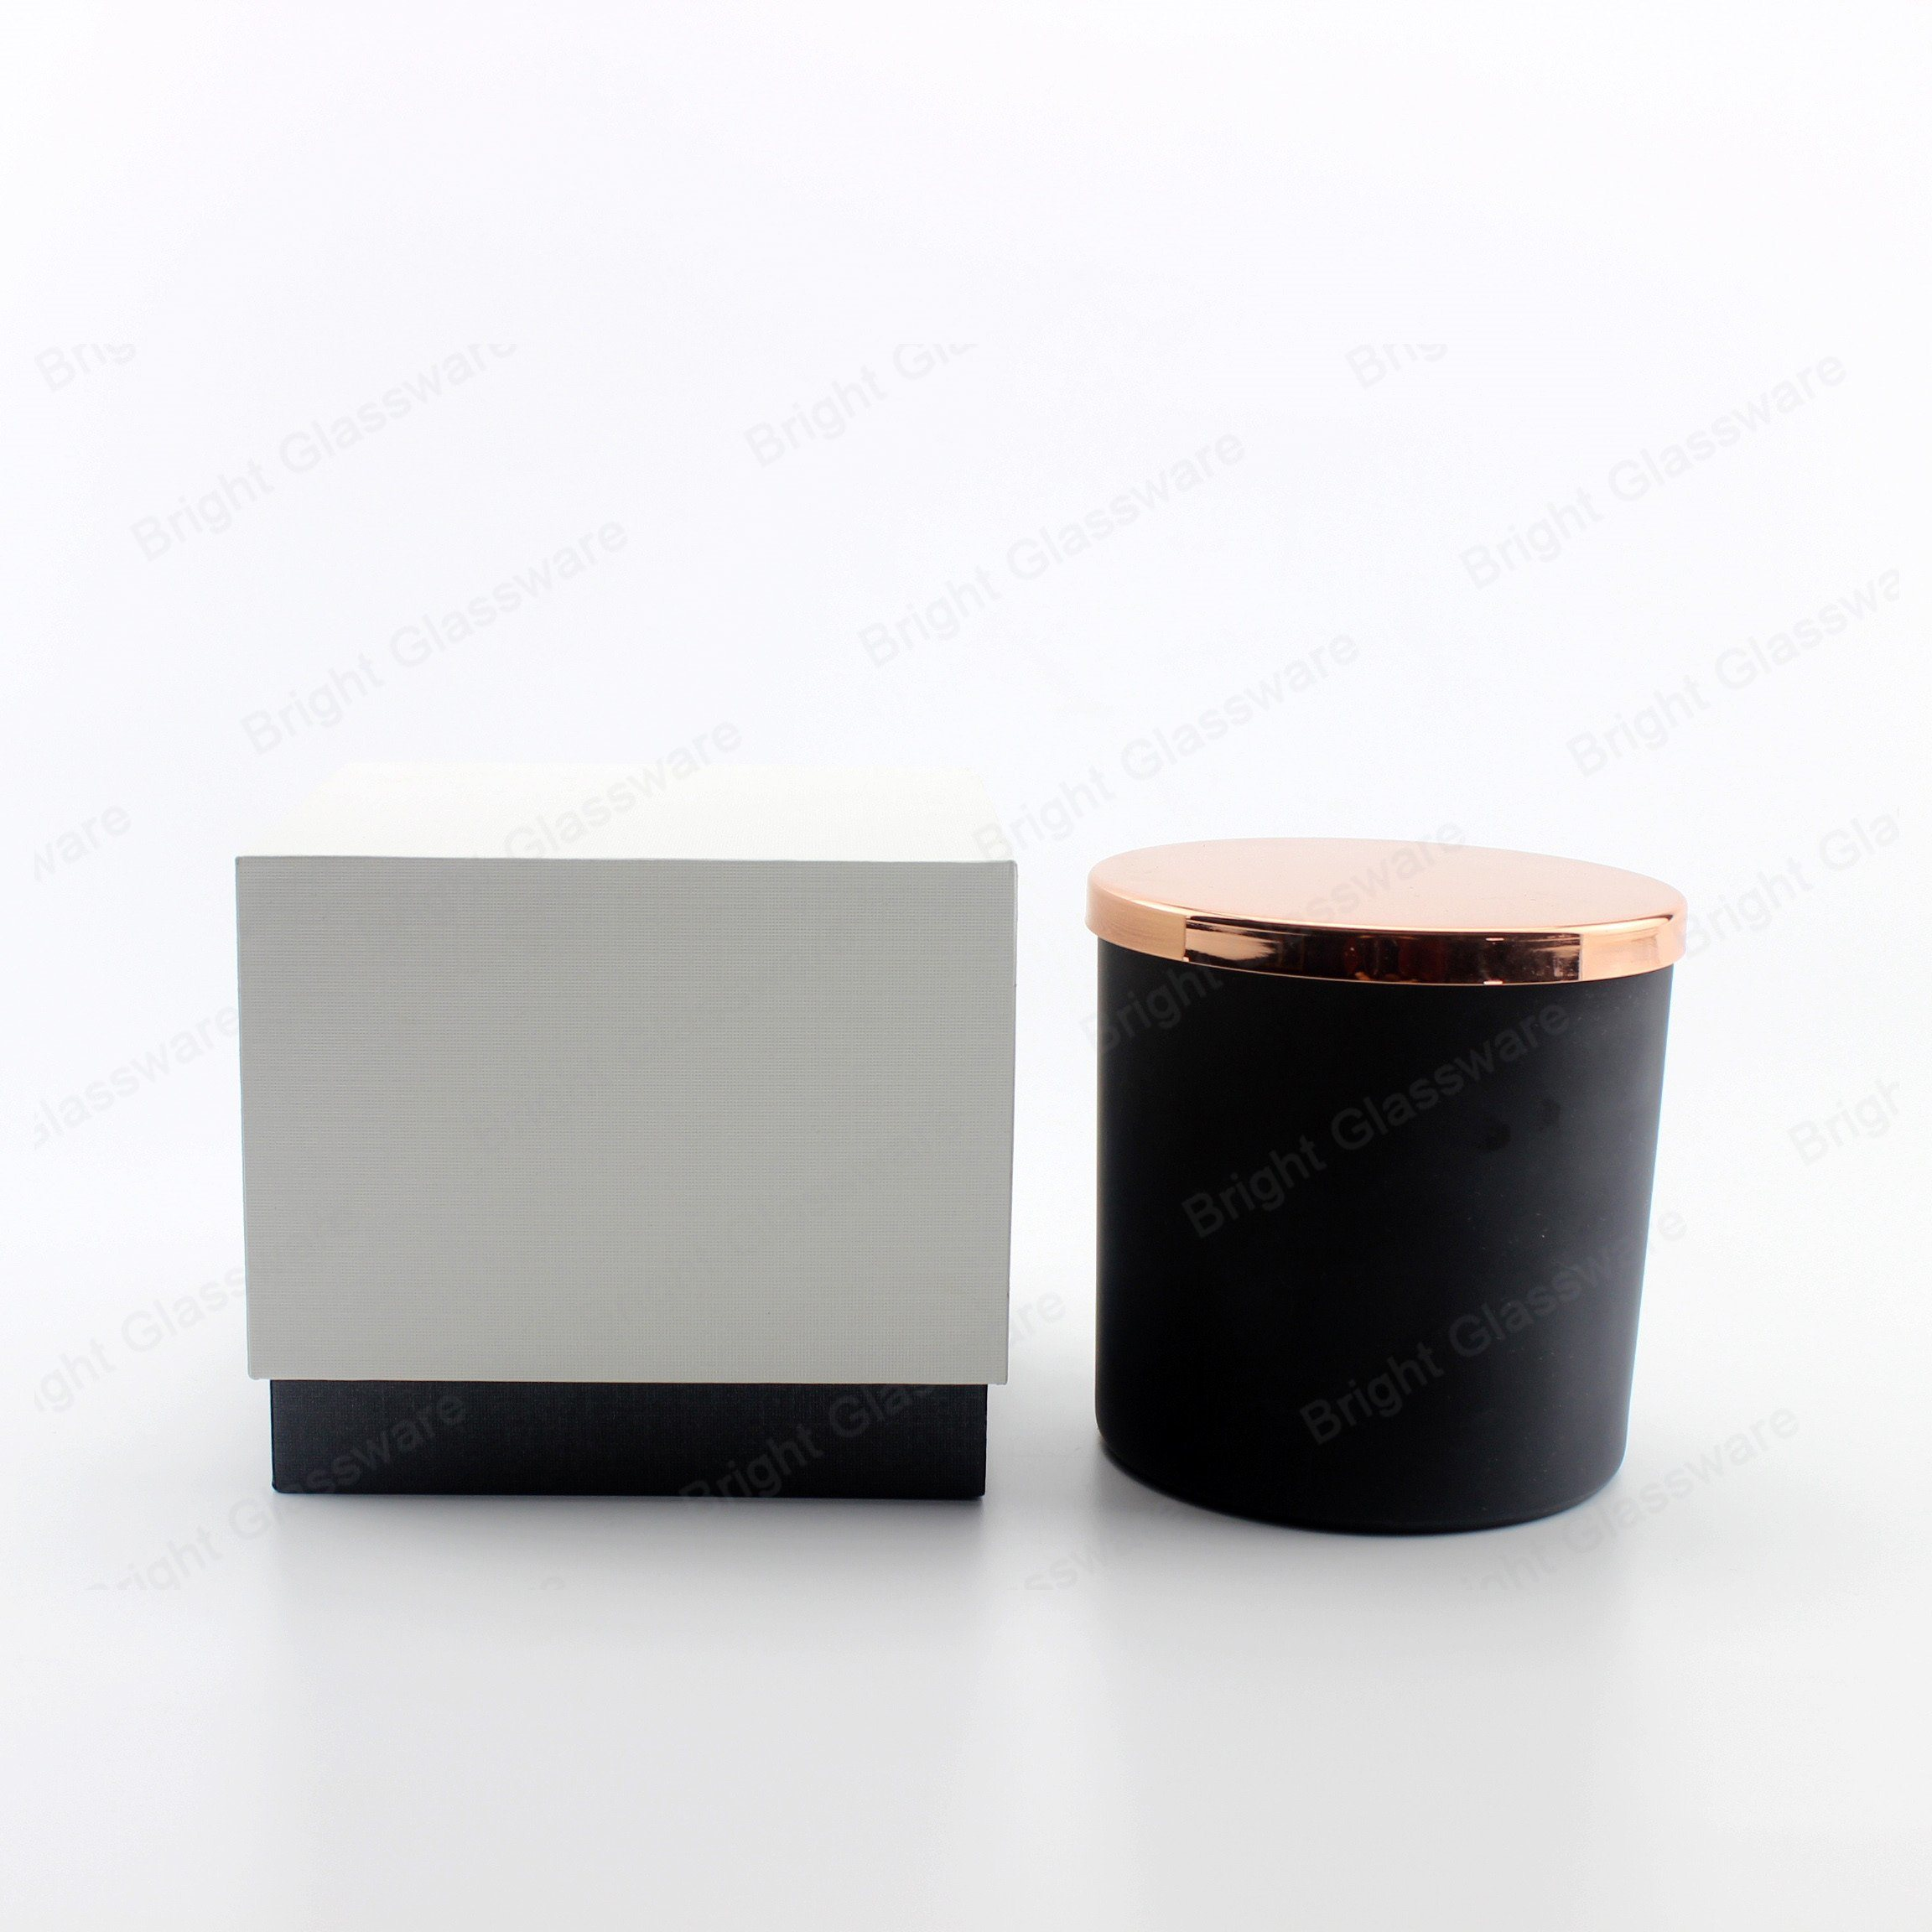 14oz Matte Black Glass Jar Candle Holders With Linen Packaging Boxes China Matte Black Candle Jar And Candle Packaging Gift Boxes Price Made In China Com